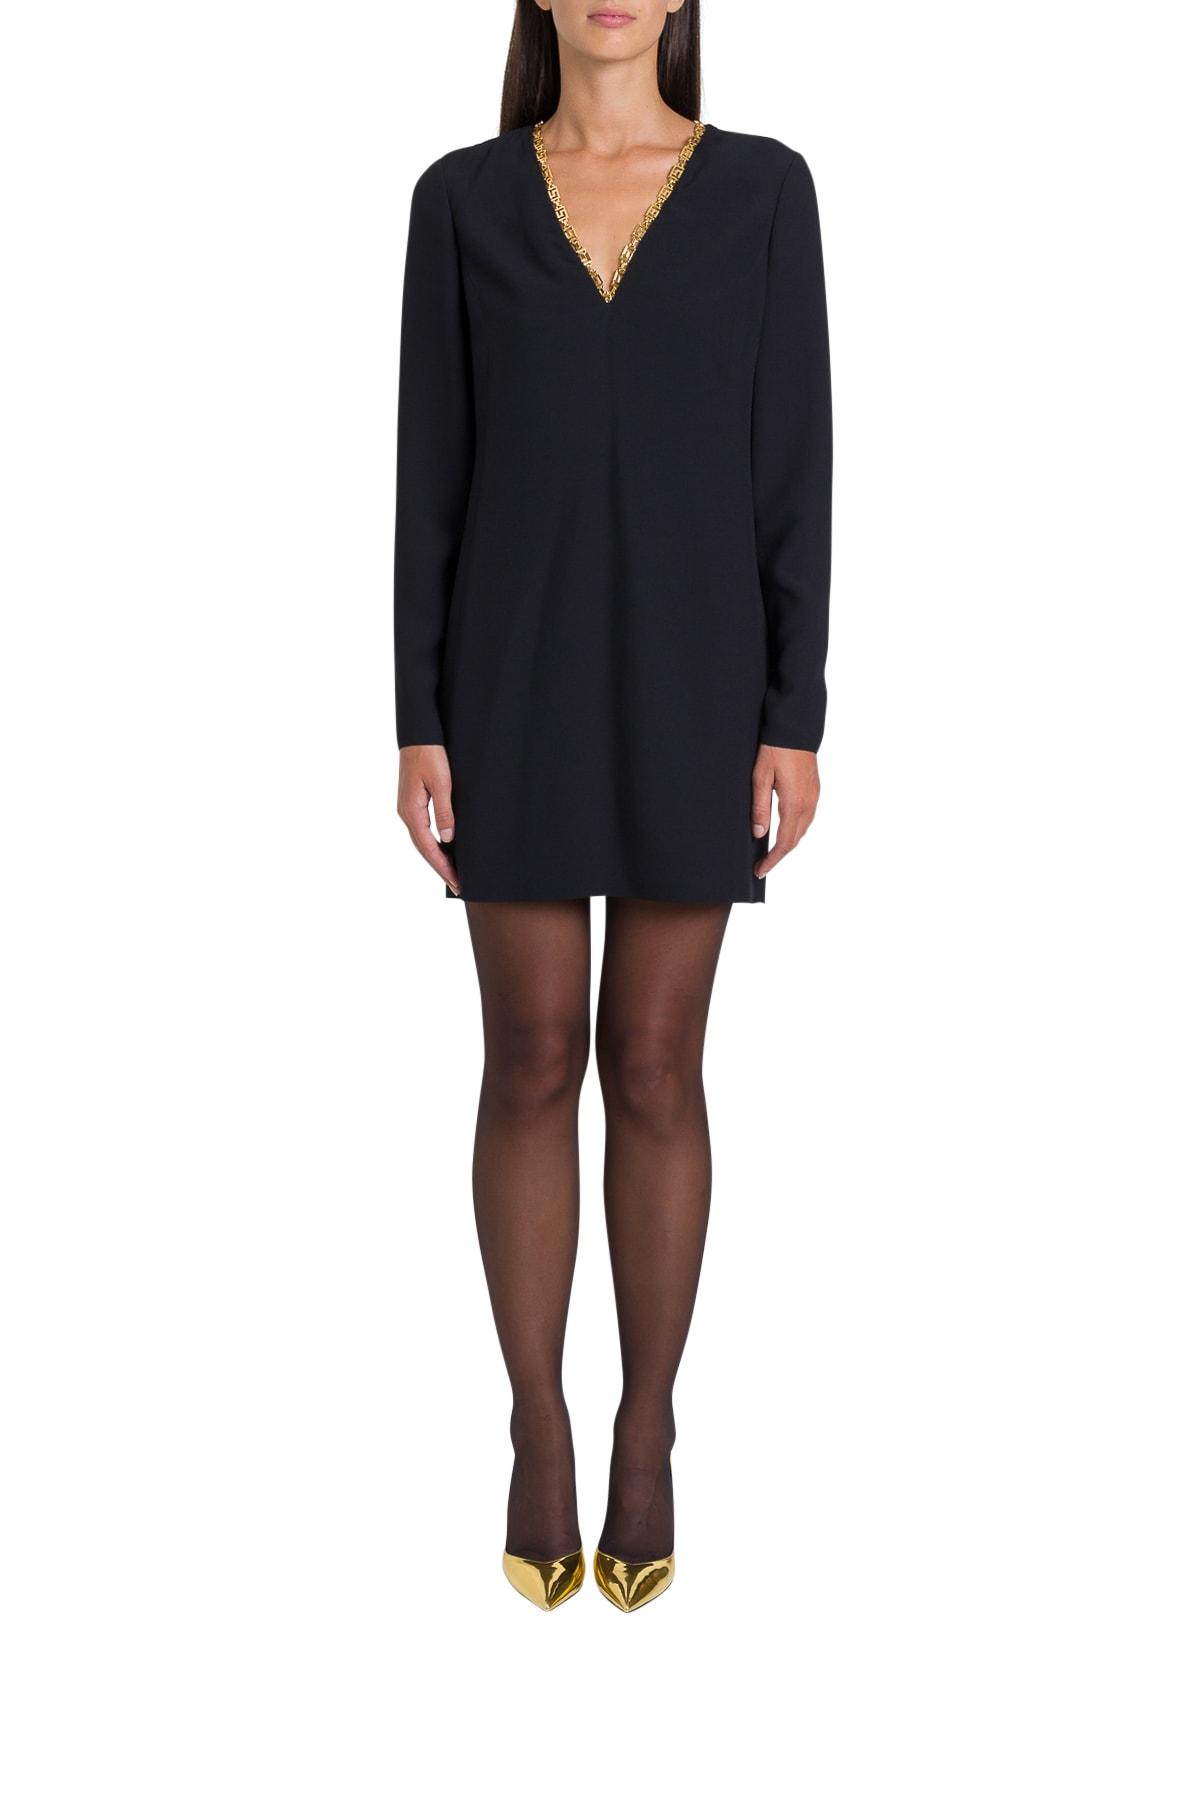 Buy Versace Greek Detailed Sheath Dress online, shop Versace with free shipping